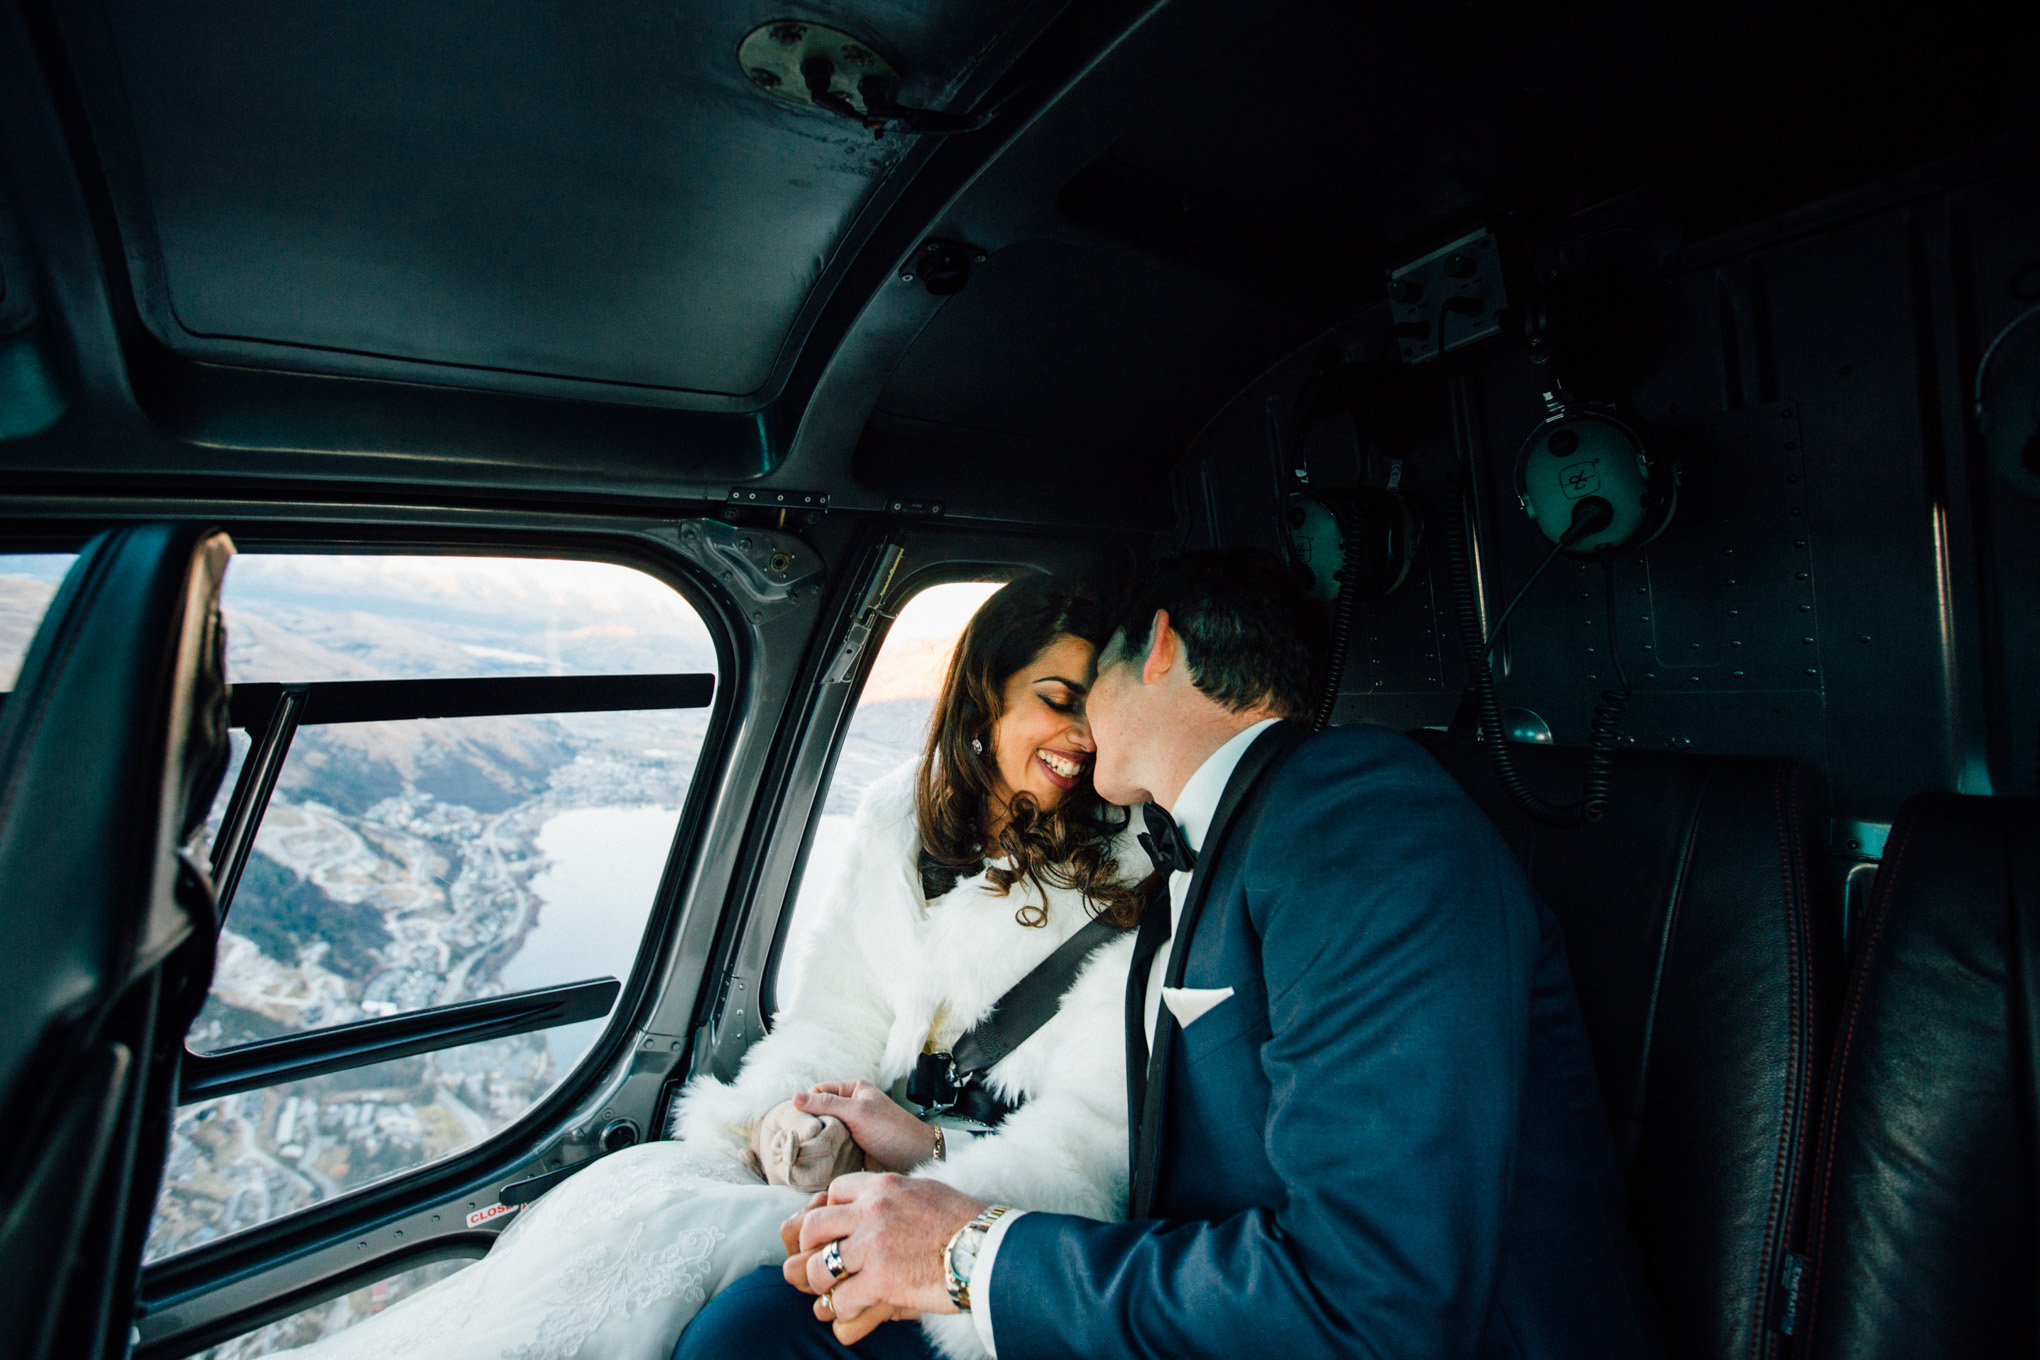 helicopter ride queenstown wedding